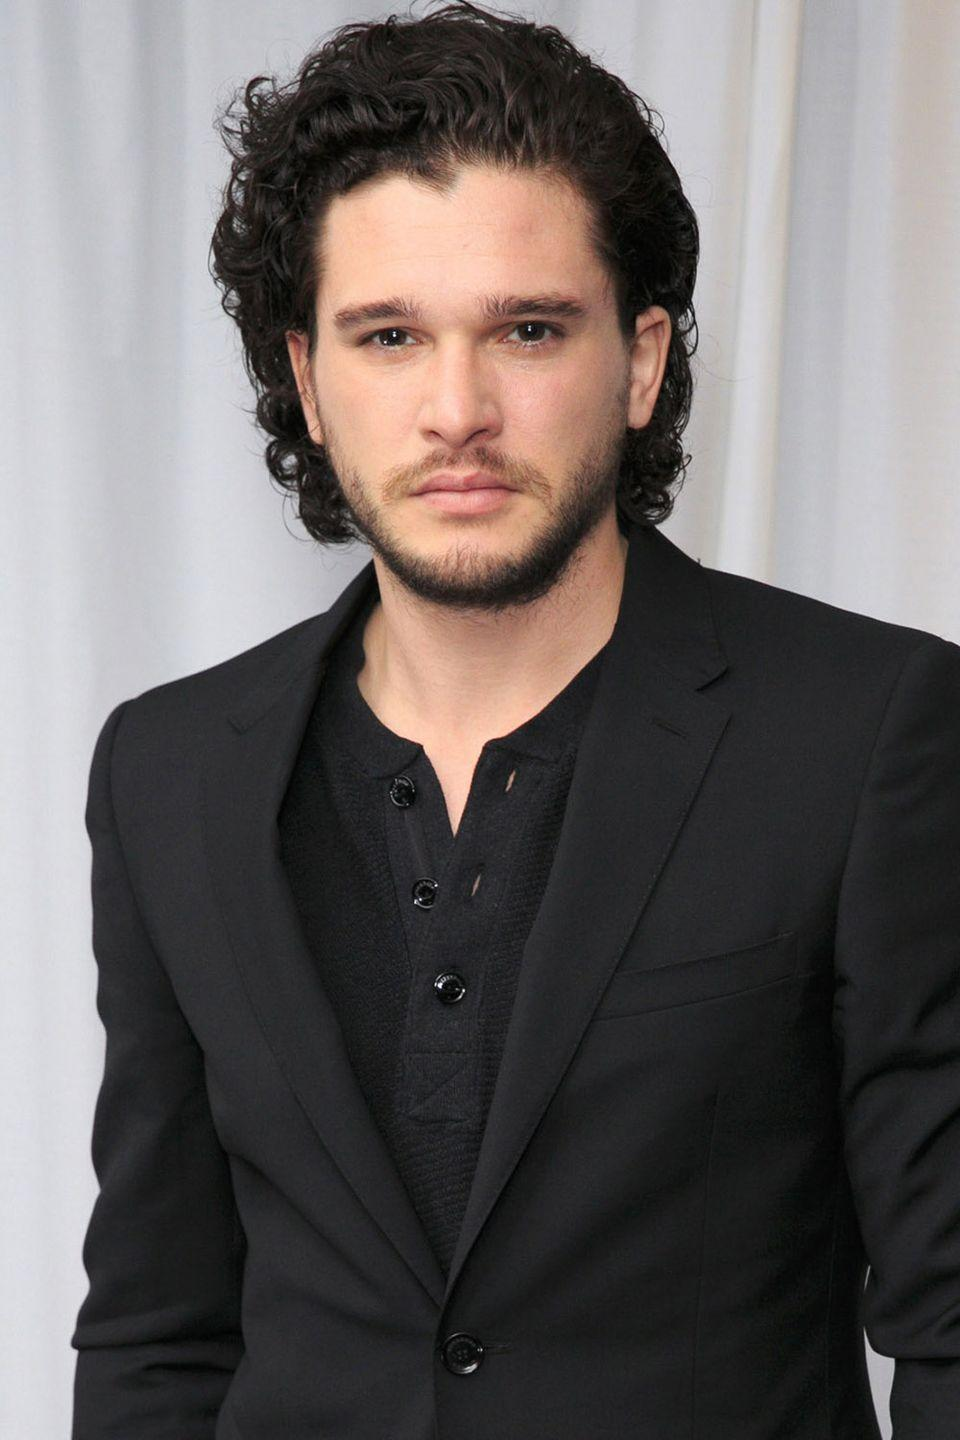 "<p><strong>Born</strong>: Christopher Catesby Harington</p><p>In an interview with <em><a href=""https://www.glamour.com/story/kit-harington-interview"" rel=""nofollow noopener"" target=""_blank"" data-ylk=""slk:Glamour"" class=""link rapid-noclick-resp"">Glamour</a></em>, the <em>Game of Thrones</em> star revealed that his parents didn't tell him his real name was Christopher until he was 11 years old. ""I think they could see that I wanted to be Kit, but Christopher was a bit of a tradition,"" Harington <a href=""https://www.glamour.com/story/kit-harington-interview"" rel=""nofollow noopener"" target=""_blank"" data-ylk=""slk:explained"" class=""link rapid-noclick-resp"">explained</a>. ""My brother's name is Jack, but his real name is John. Kit is traditionally an offshoot of Christopher, it's just not used that often. My middle name is Catesby.""</p>"